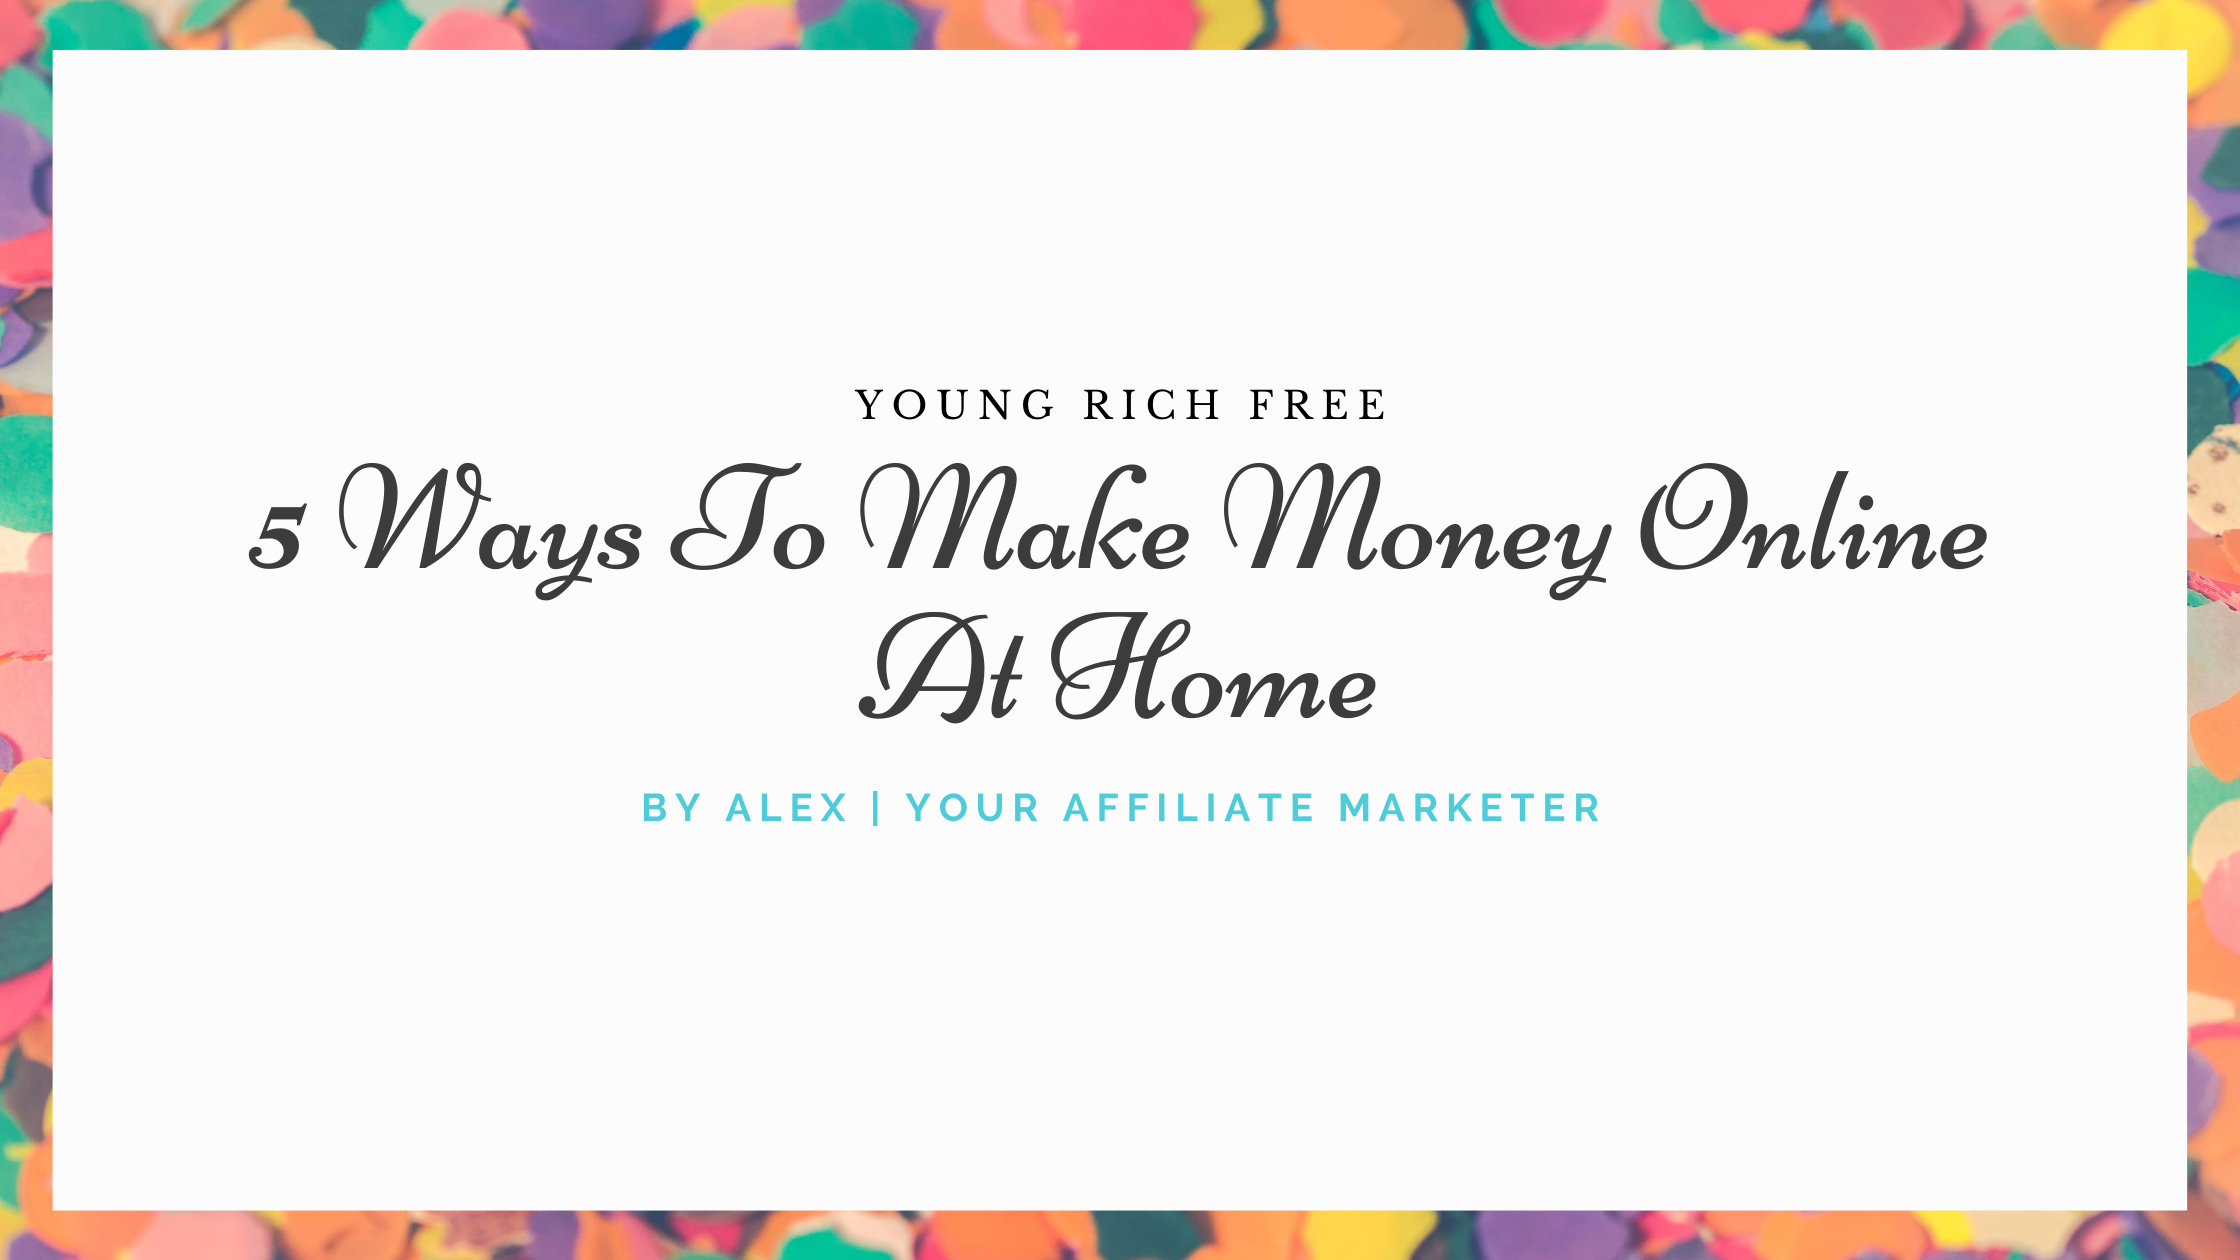 5 Ways To Make Money Online At Home